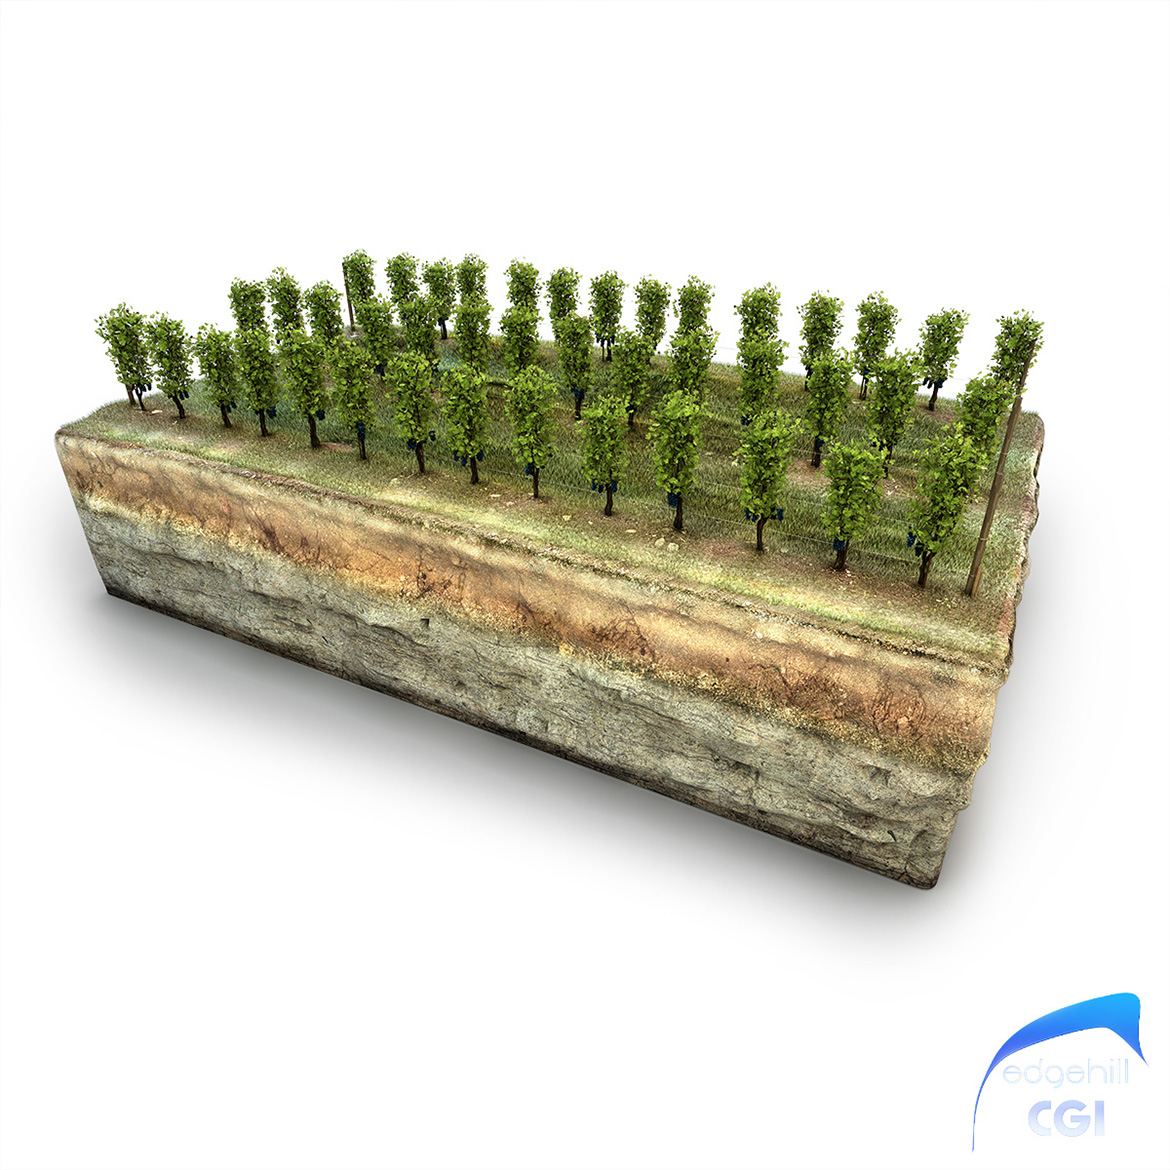 Vineyard Diorama Edge Hill CGI